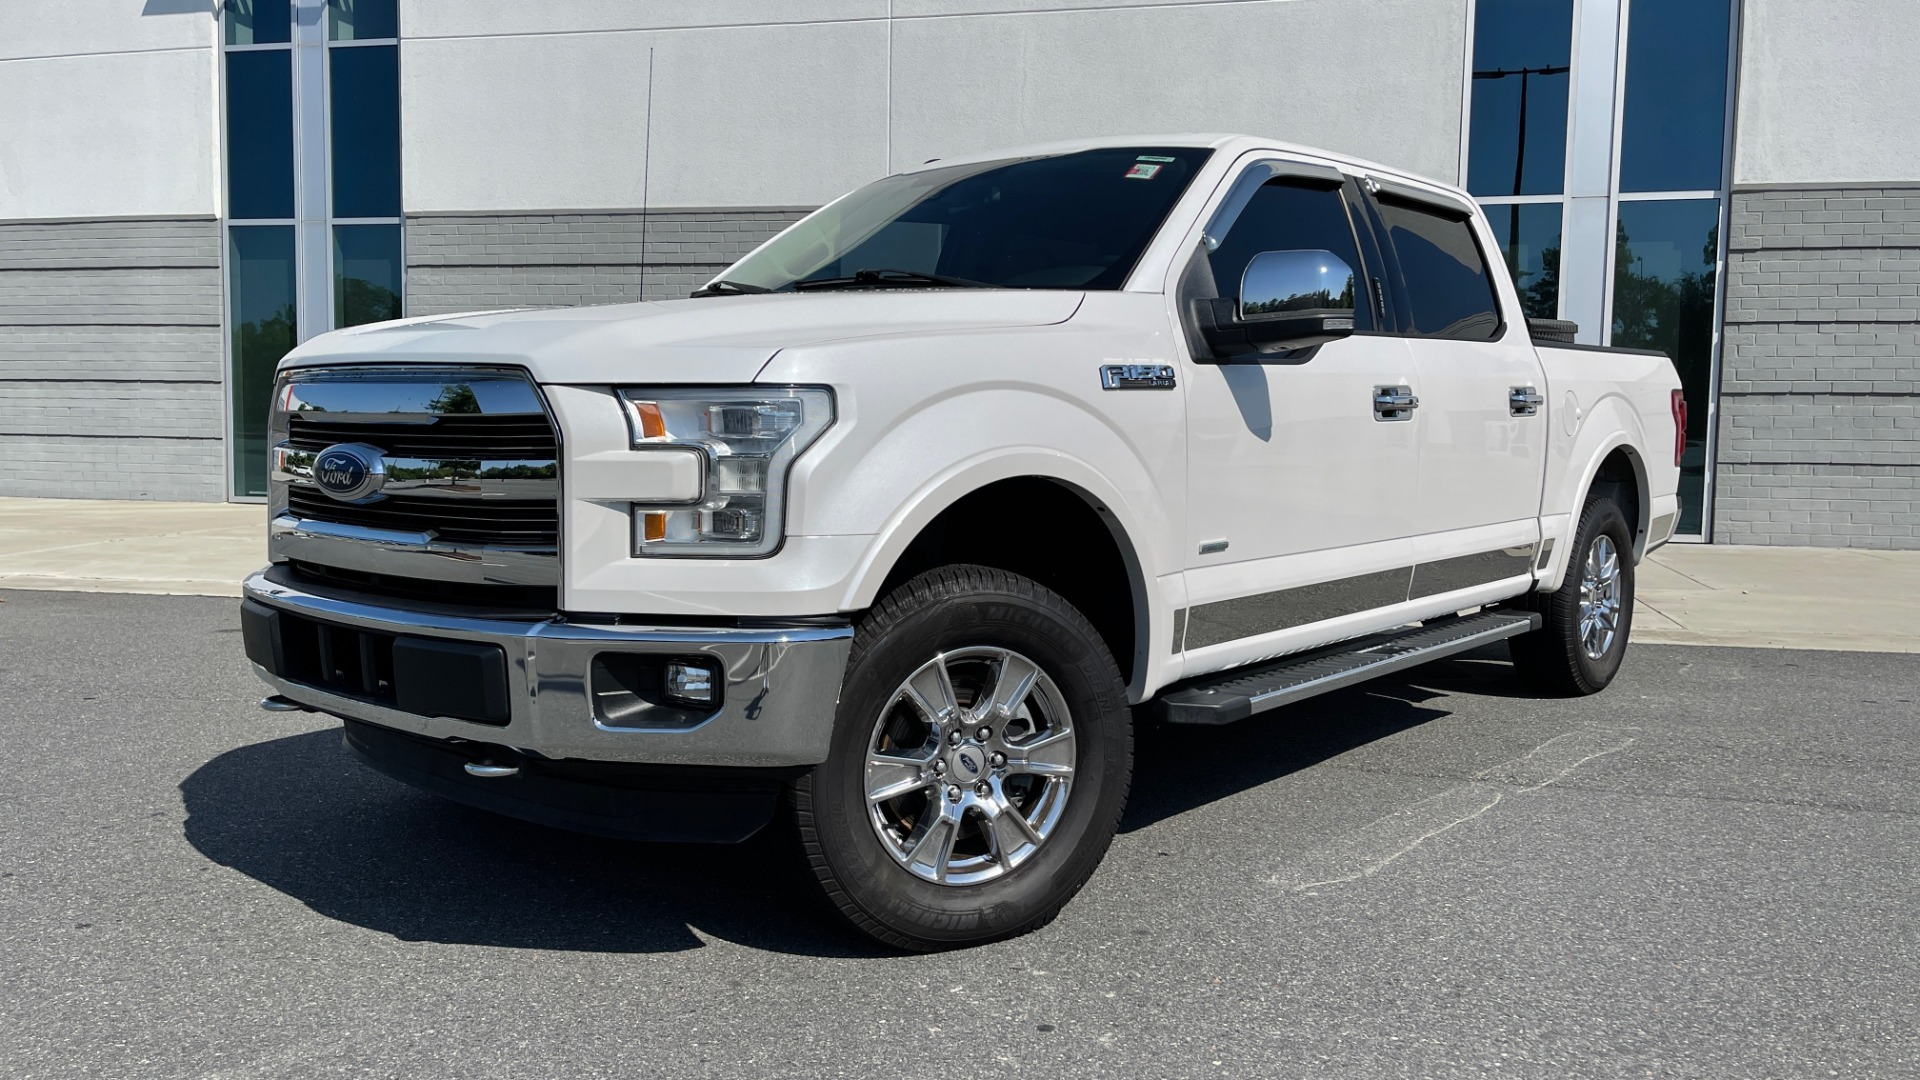 Used 2016 Ford F-150 LARIAT 4X4 / 3.5L V6 / 6-SPD AUTO / BLIS / SONY / NAV / REARVIEW for sale $37,500 at Formula Imports in Charlotte NC 28227 1